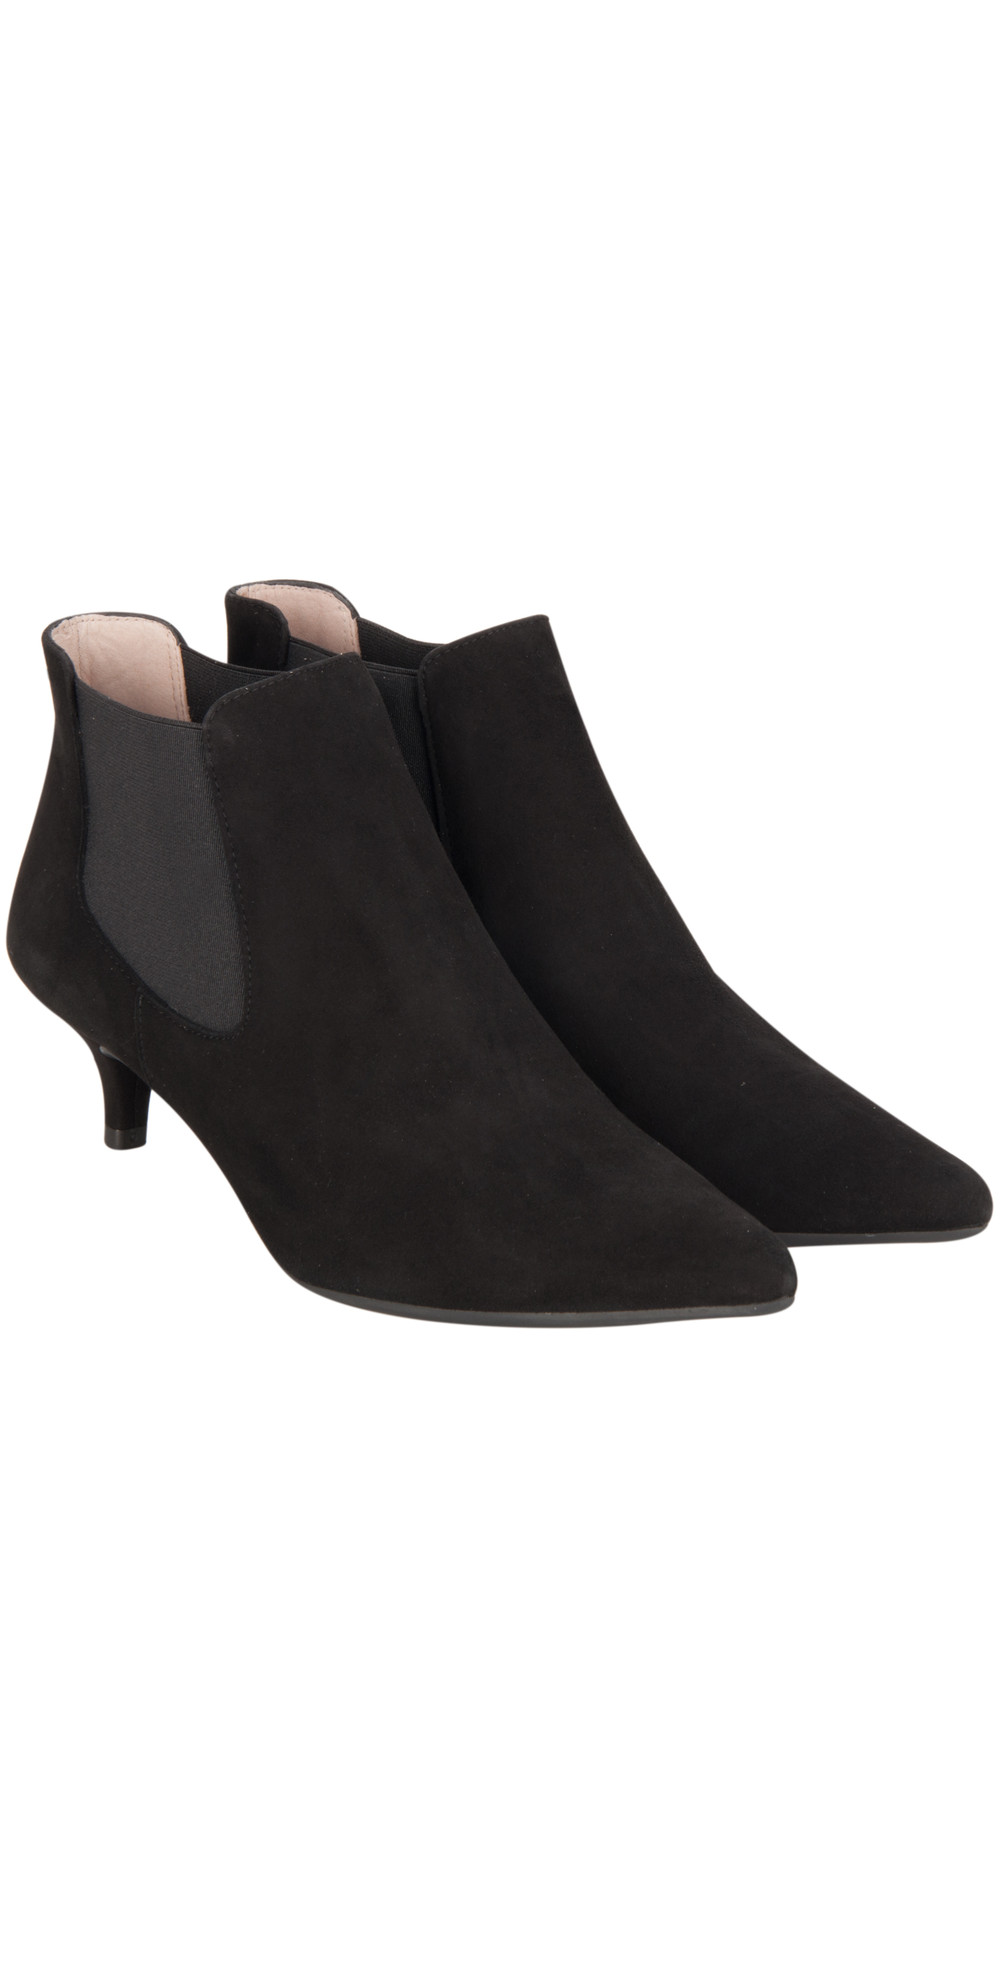 Unisa Shoes Jeoni Kitten Heel ankle Boot in Black